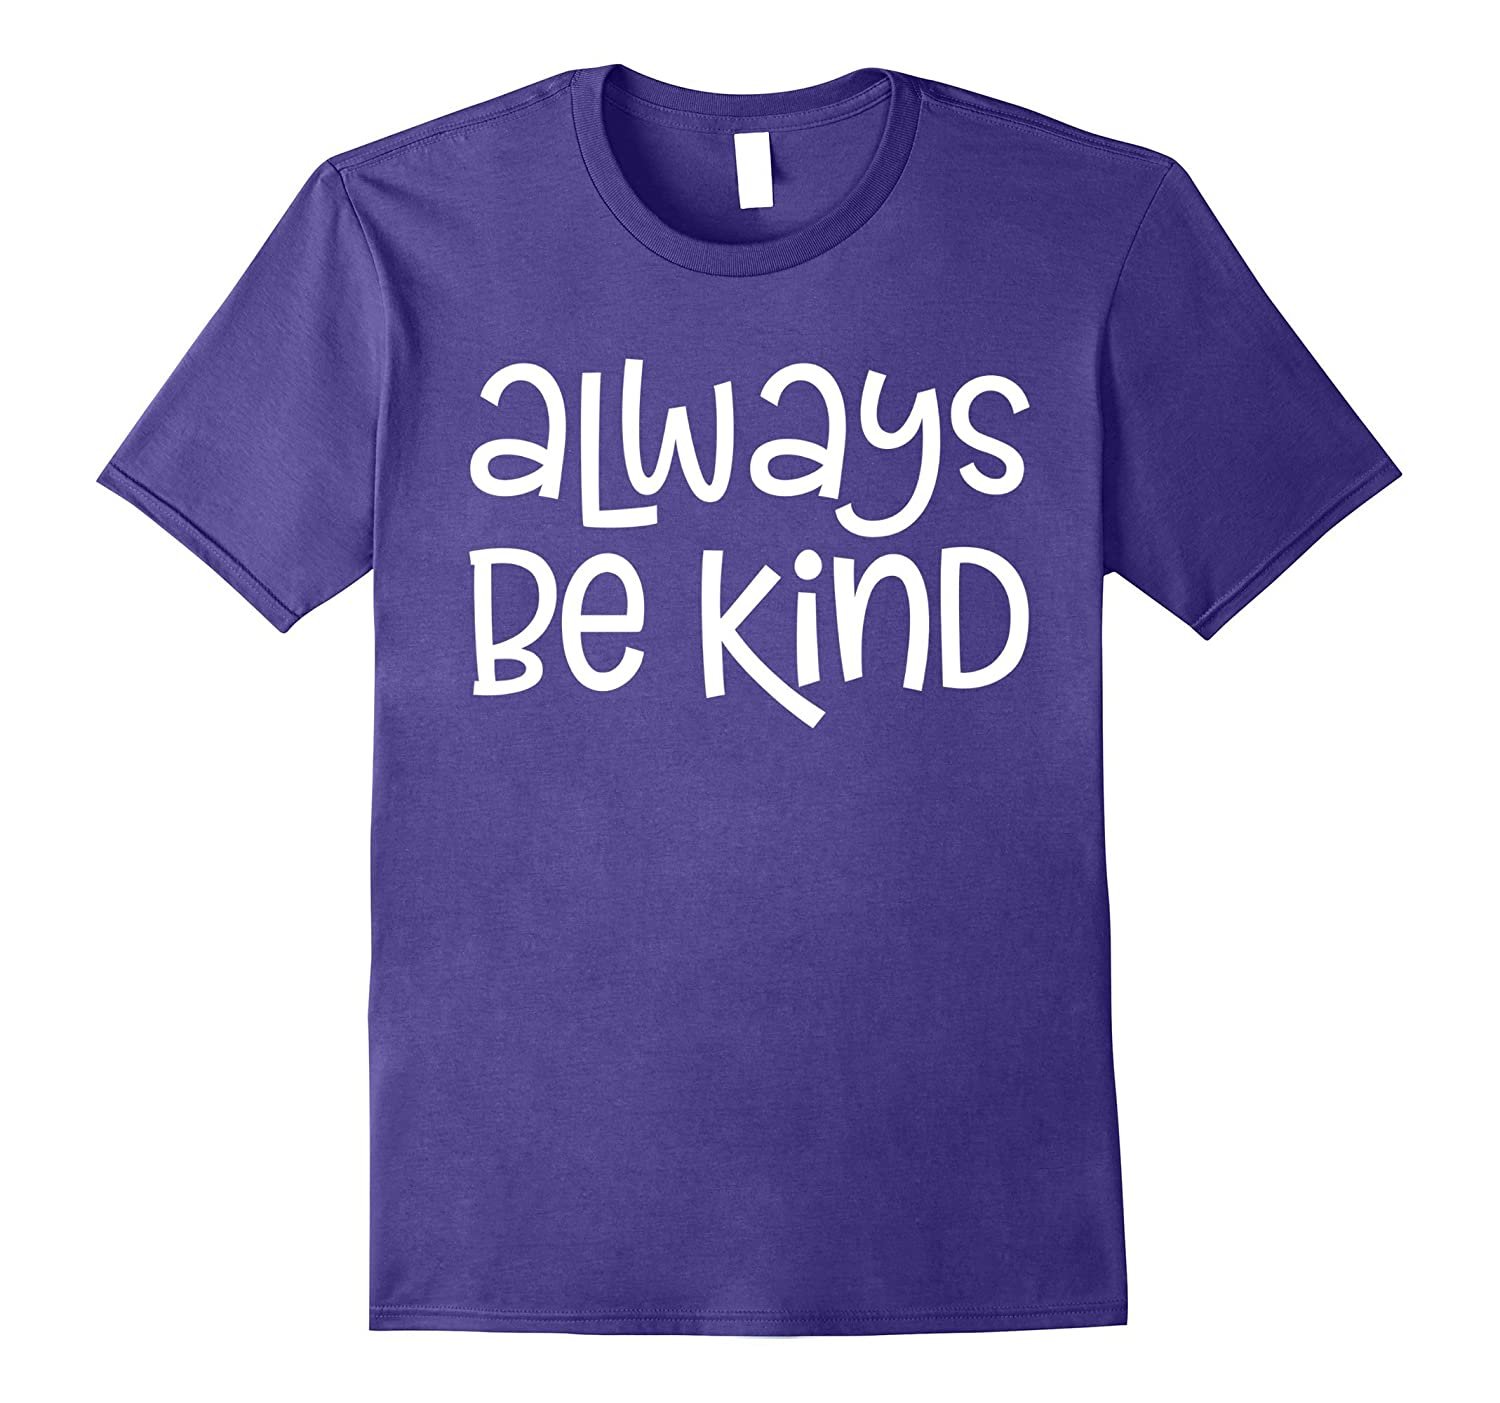 Always Be Kind T-Shirt kindness quote tee inspirational gift-RT